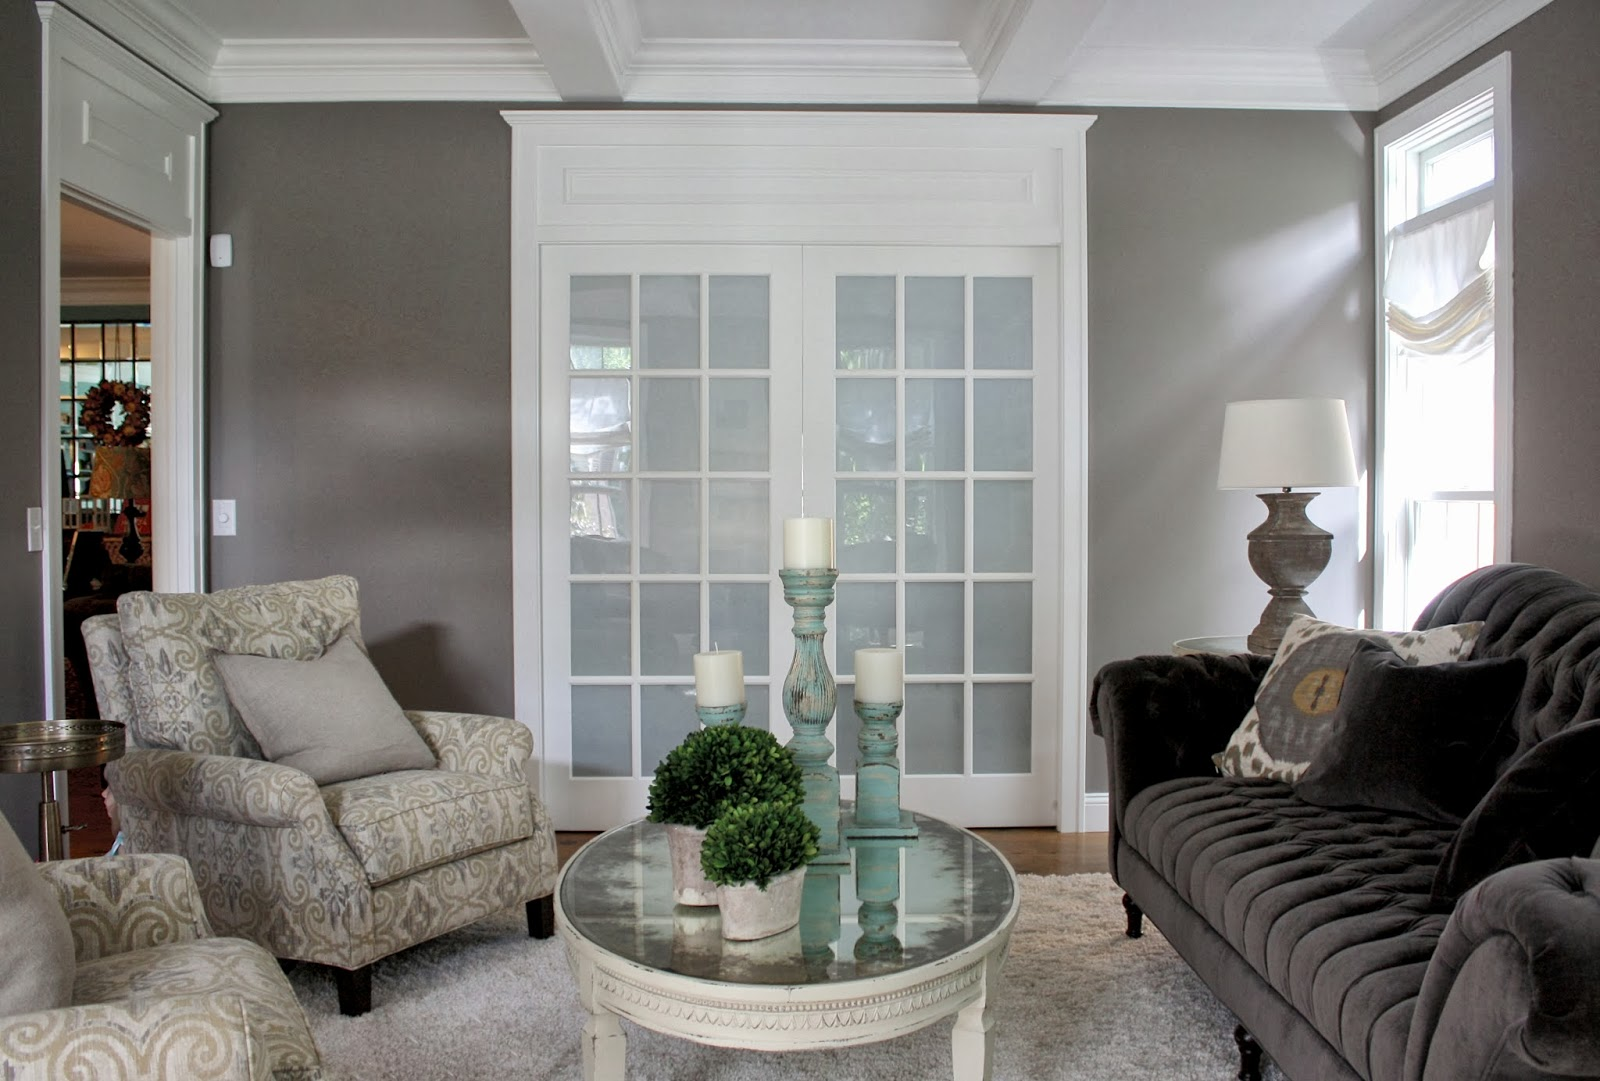 beforeafter living room makeovera design plan comes to life - Cape Cod Living Room